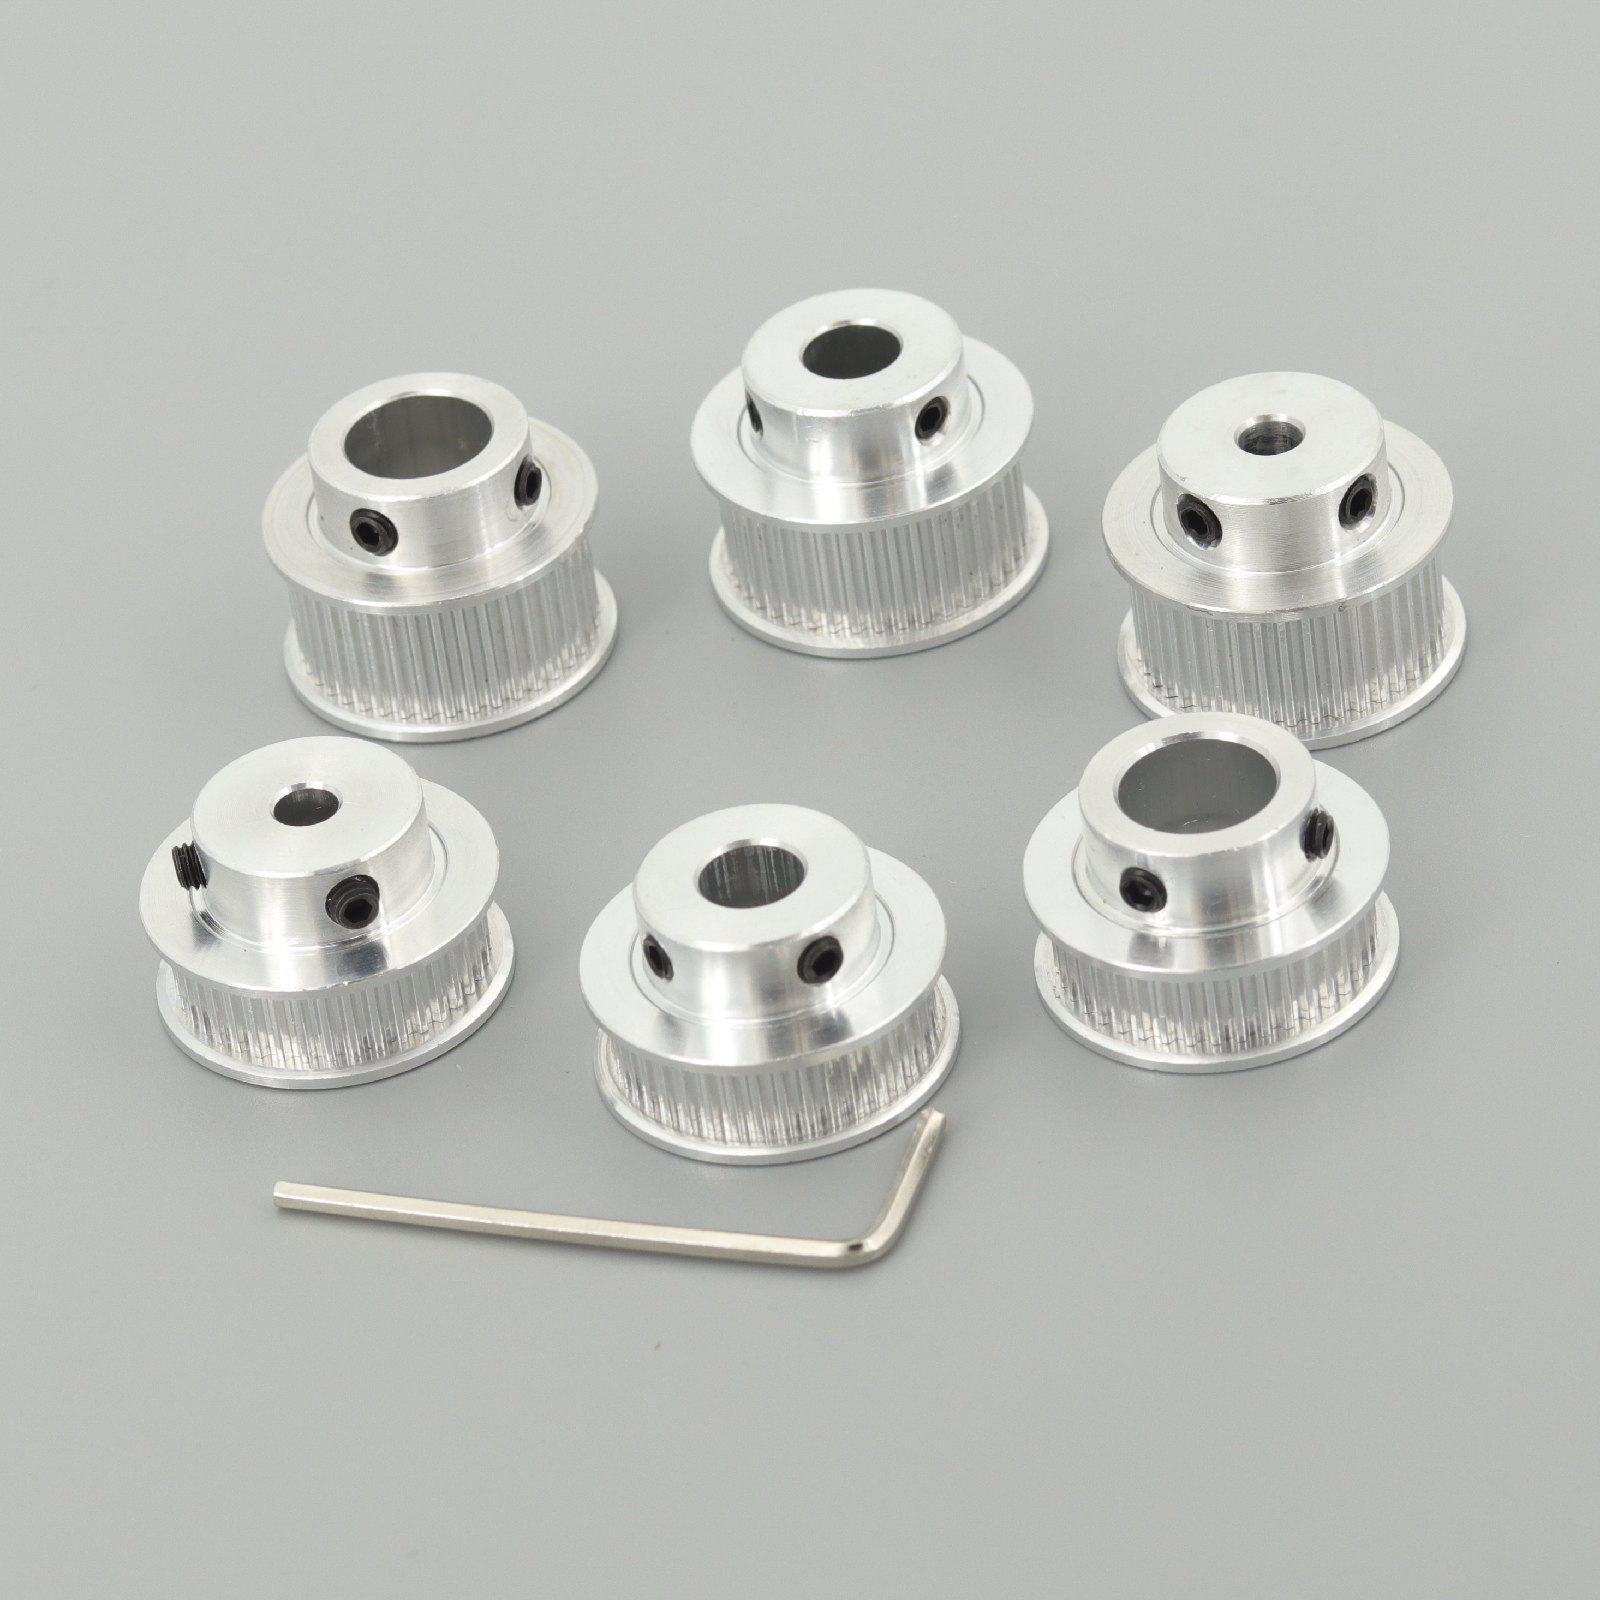 GKTOOLS GT2 Timing Pulley 2GT 40 Tooth Teeth Bore 5/6/6.35/8/10/12mm Synchronous Wheels Width 6/9/10mm Belt 3D Printer Parts